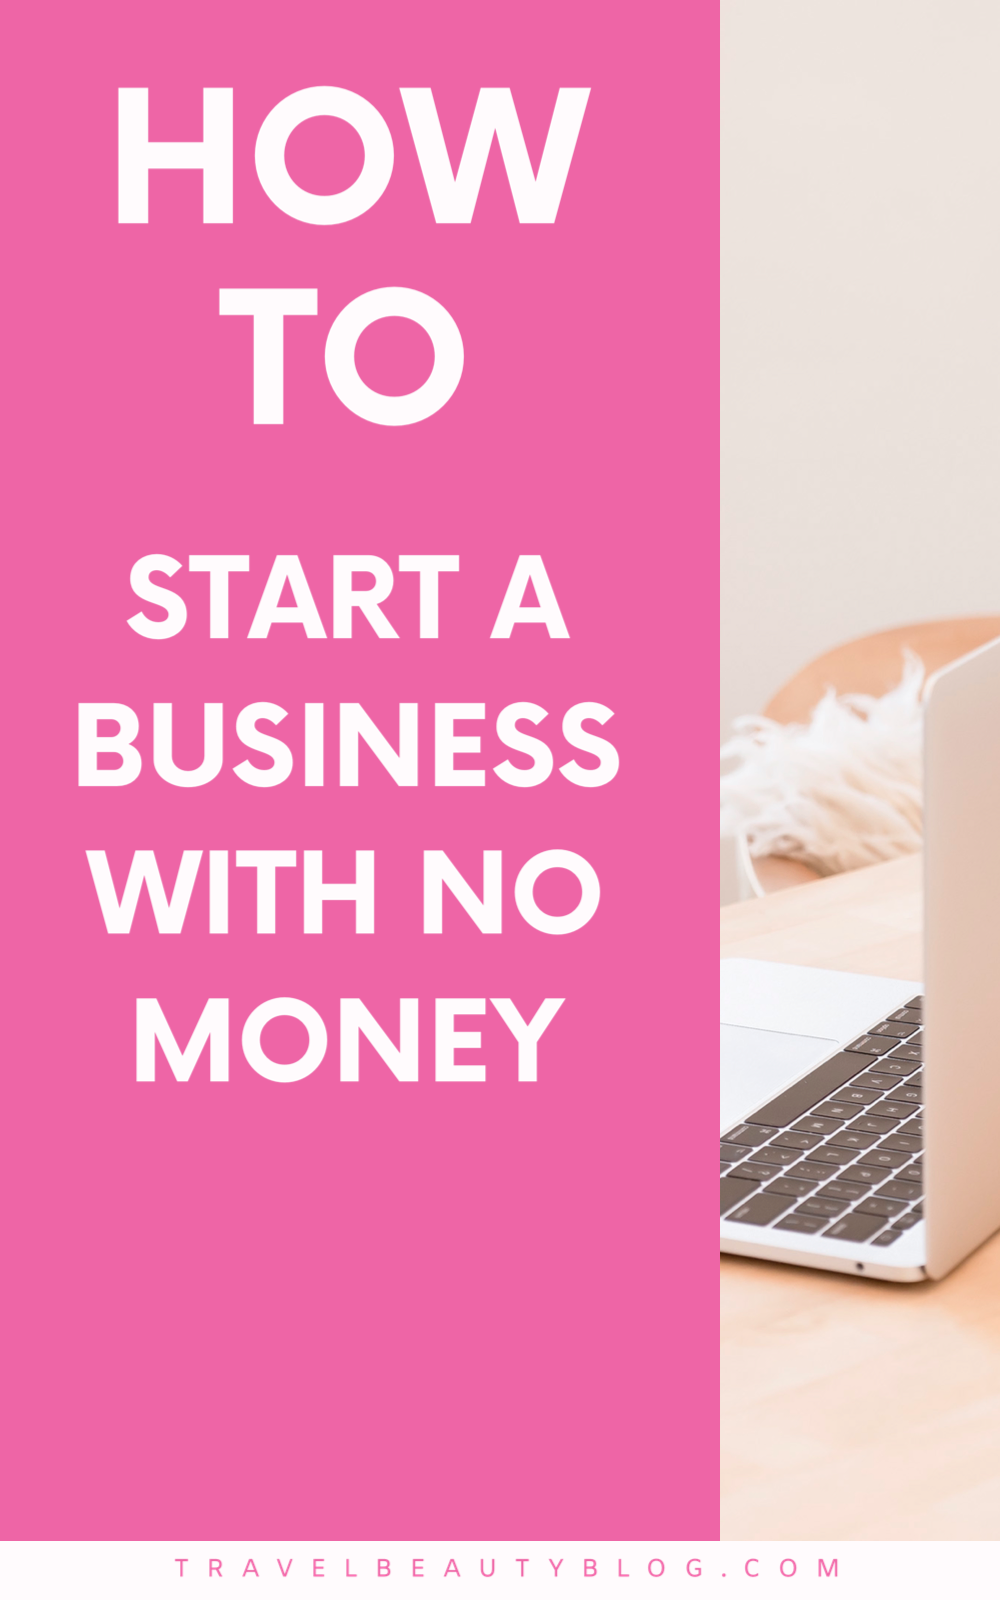 How To Invest In A Business With No Money